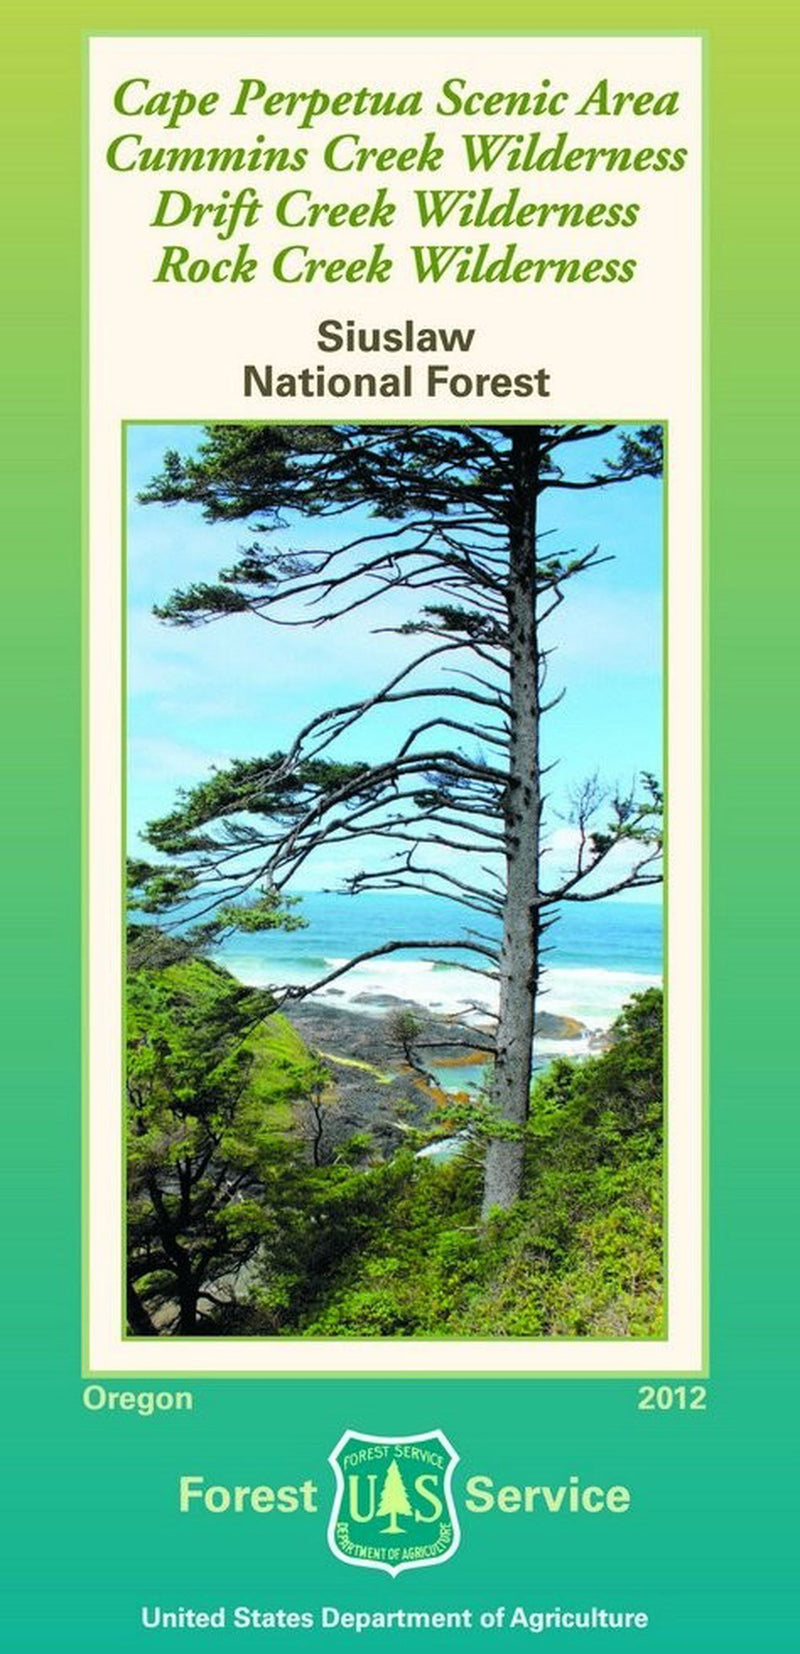 Cover of Siuslaw National Forest Wilderness Areas Map by U.S. Forest Service